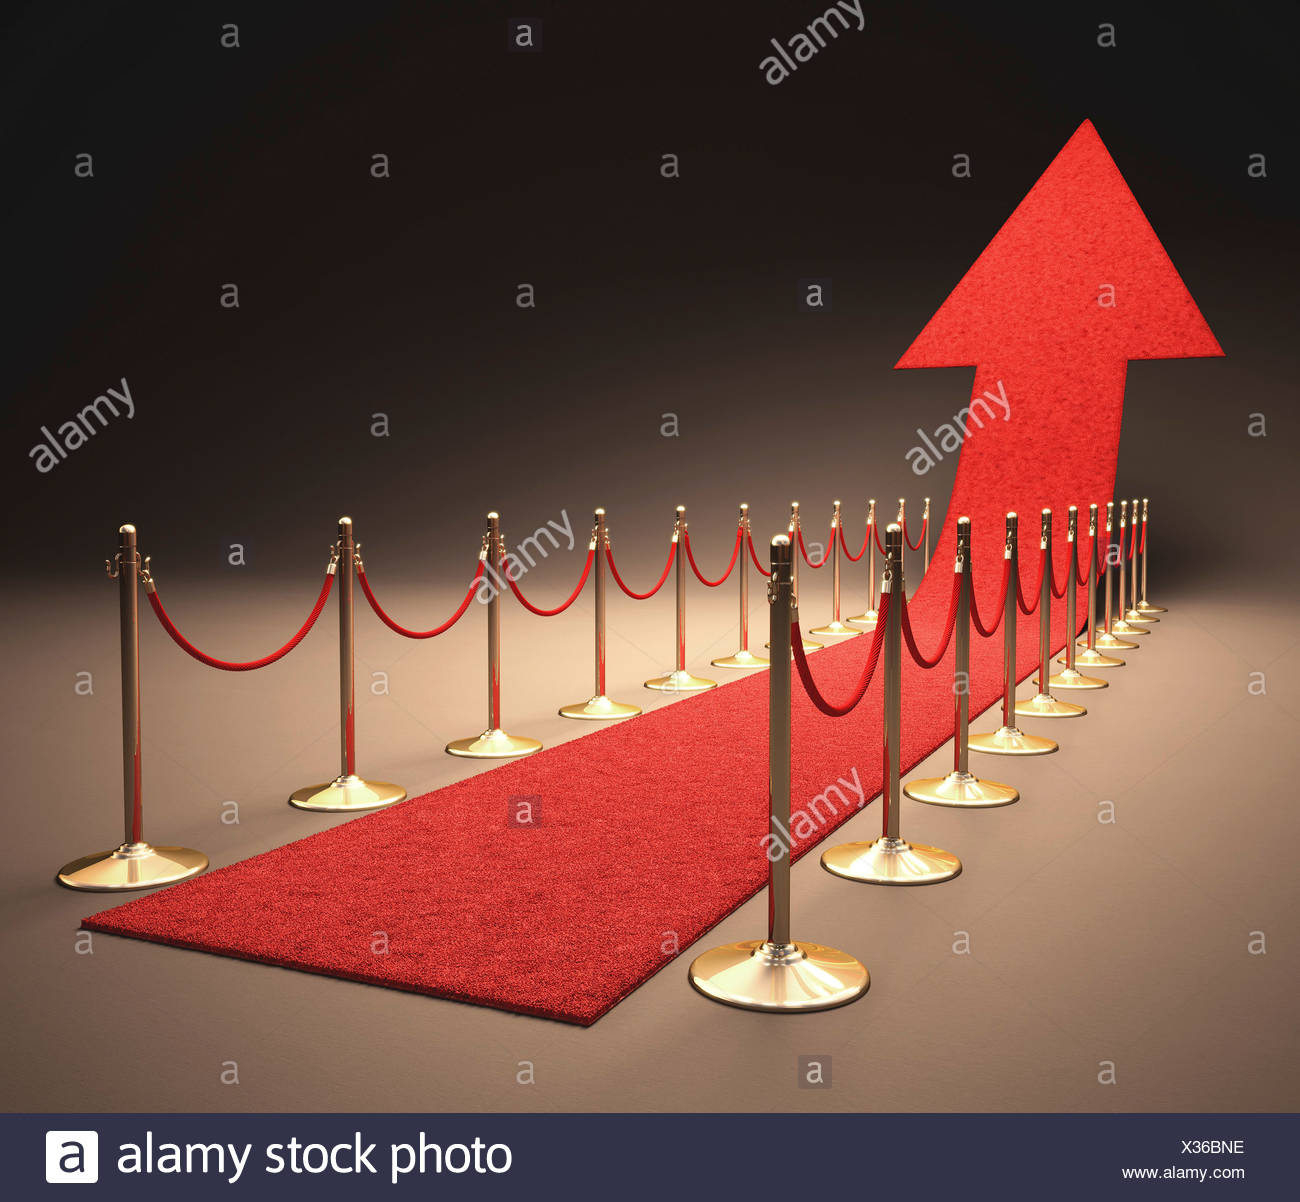 Red carpet with a red arrow pointing upwards computer artwork. - Stock Image